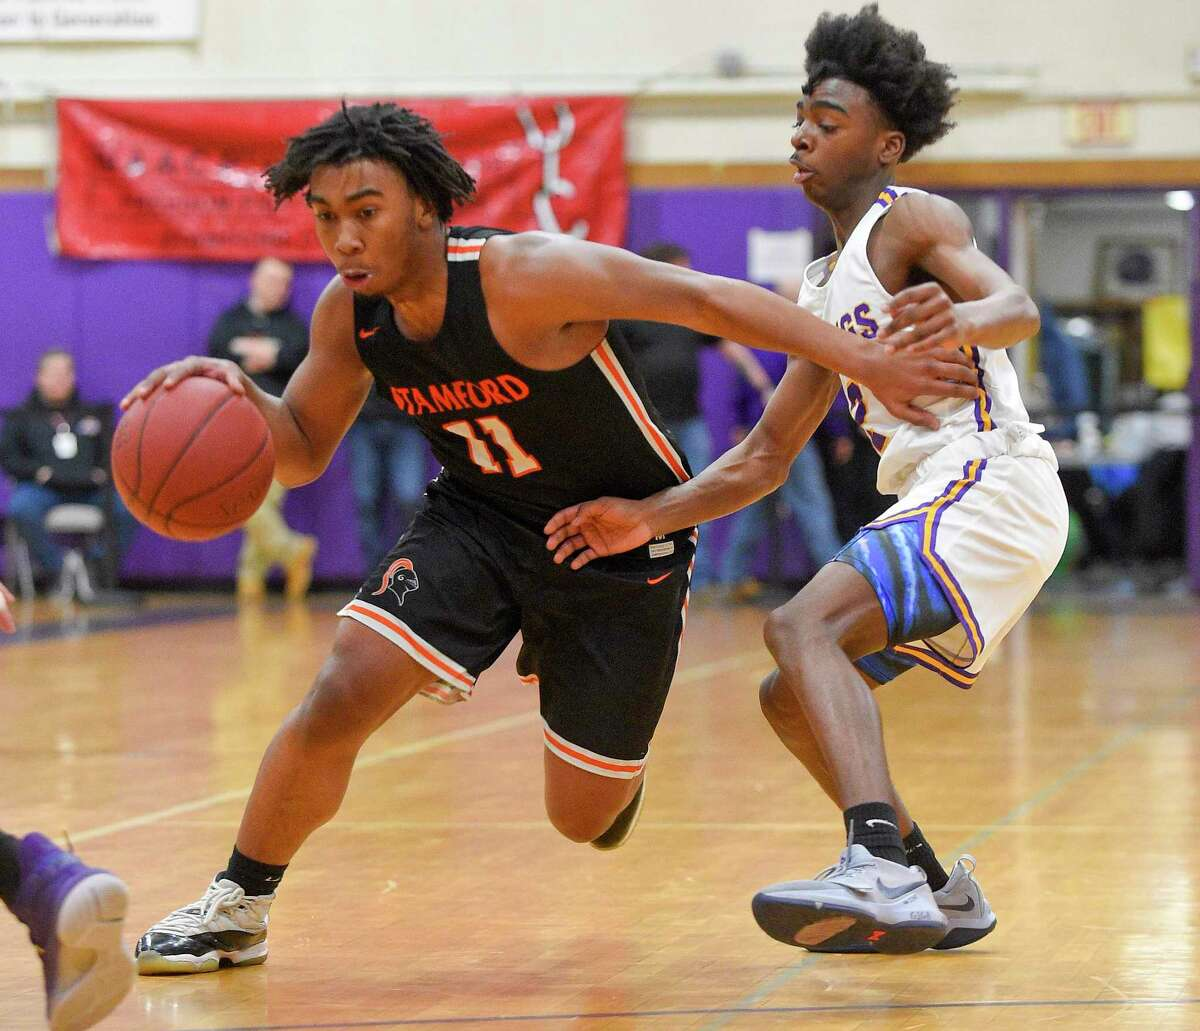 City rivals Stamford and Westhill in action during a boys basketball game in 2020 at Westhill High.